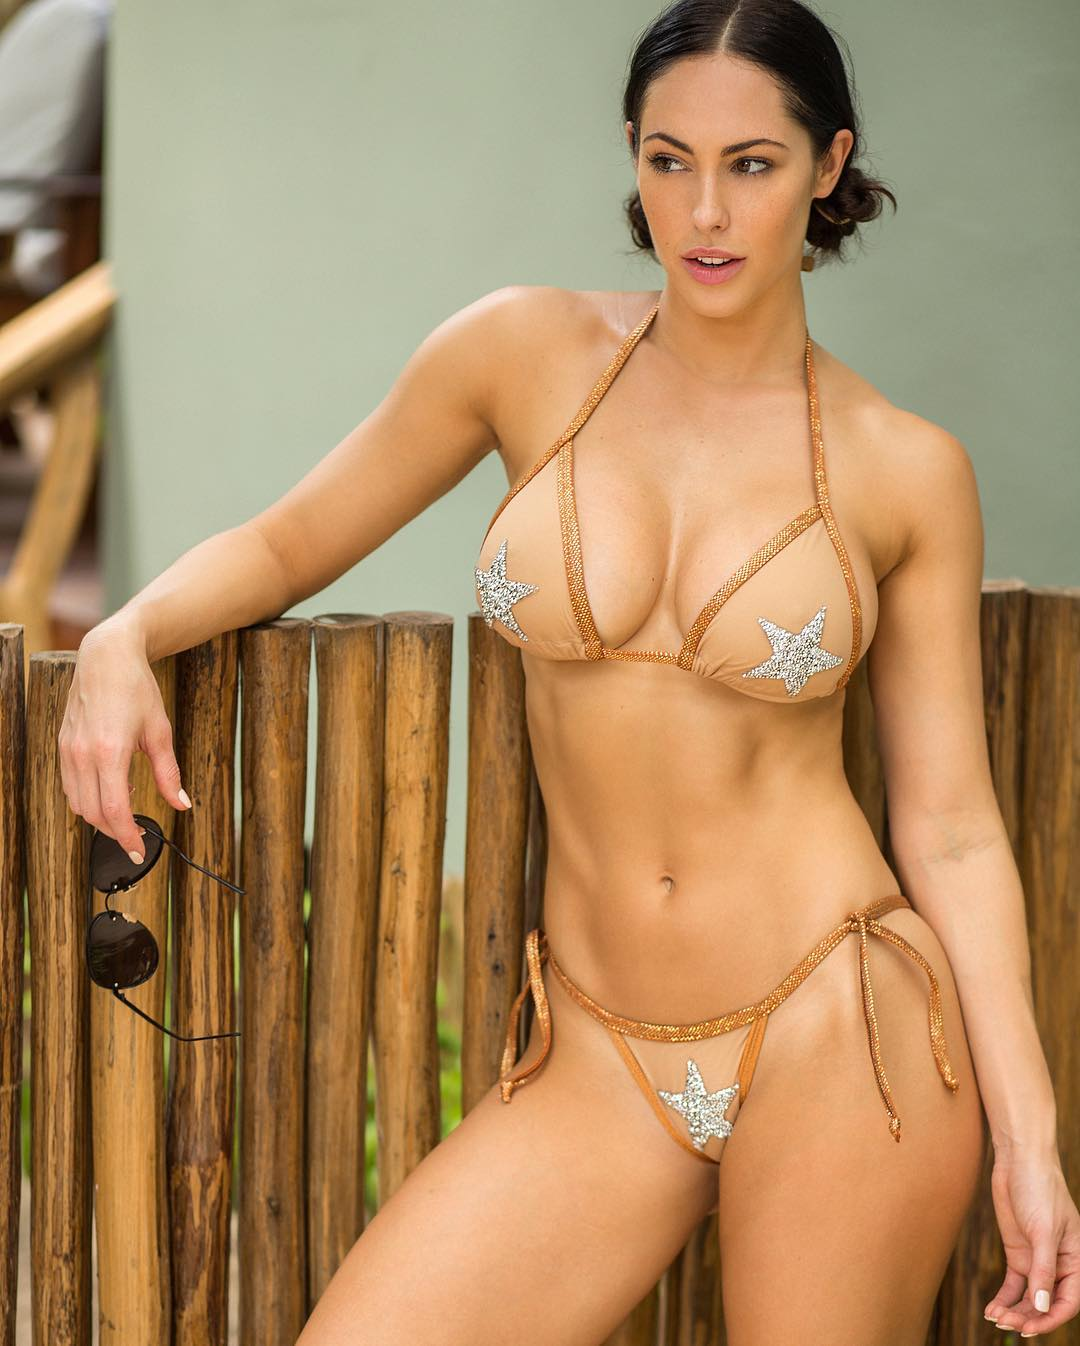 Picture of Hope Beel